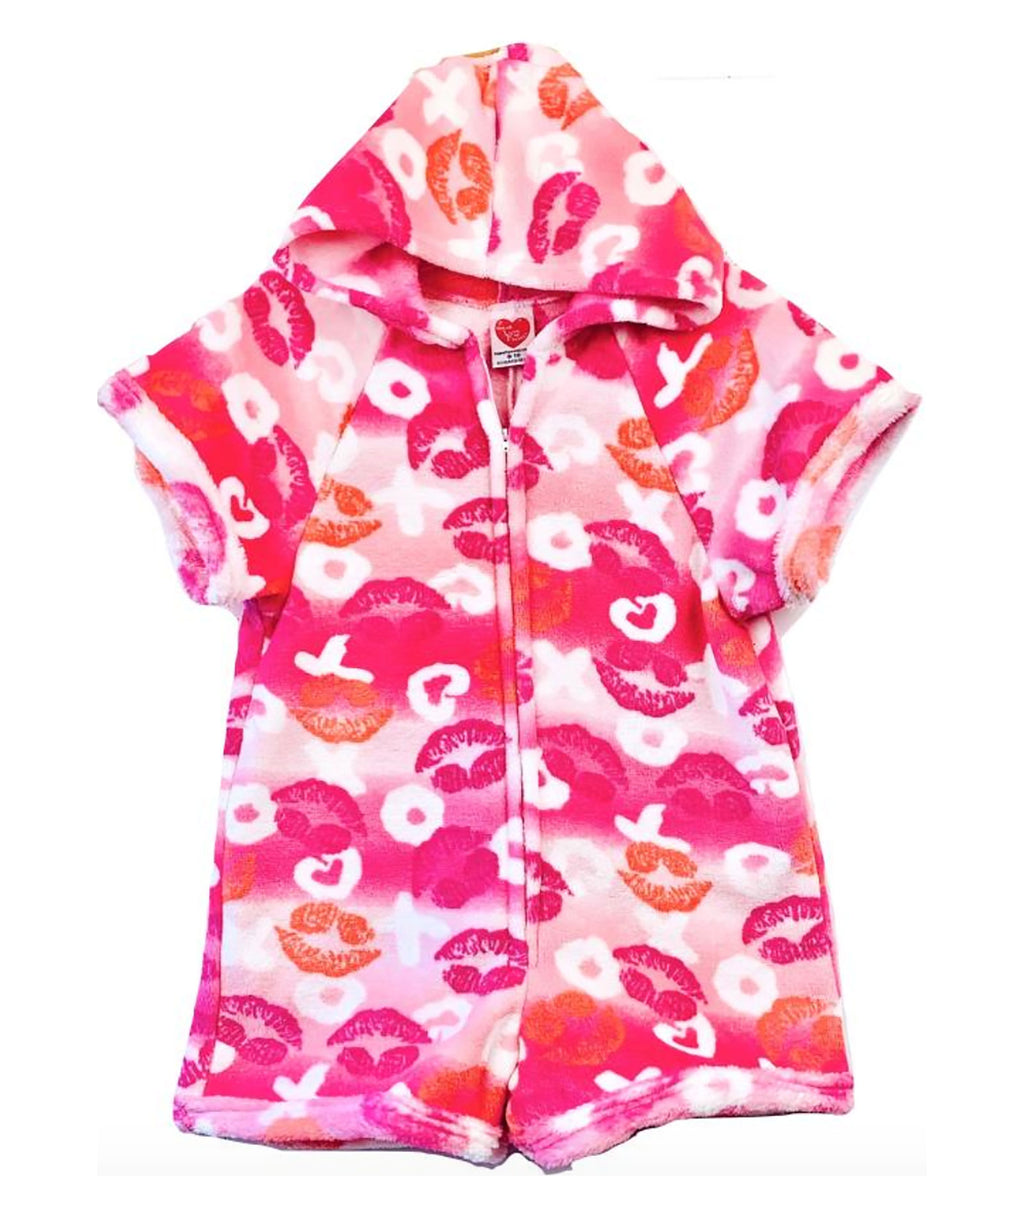 Made with Love and Kisses Pink Lips Romper